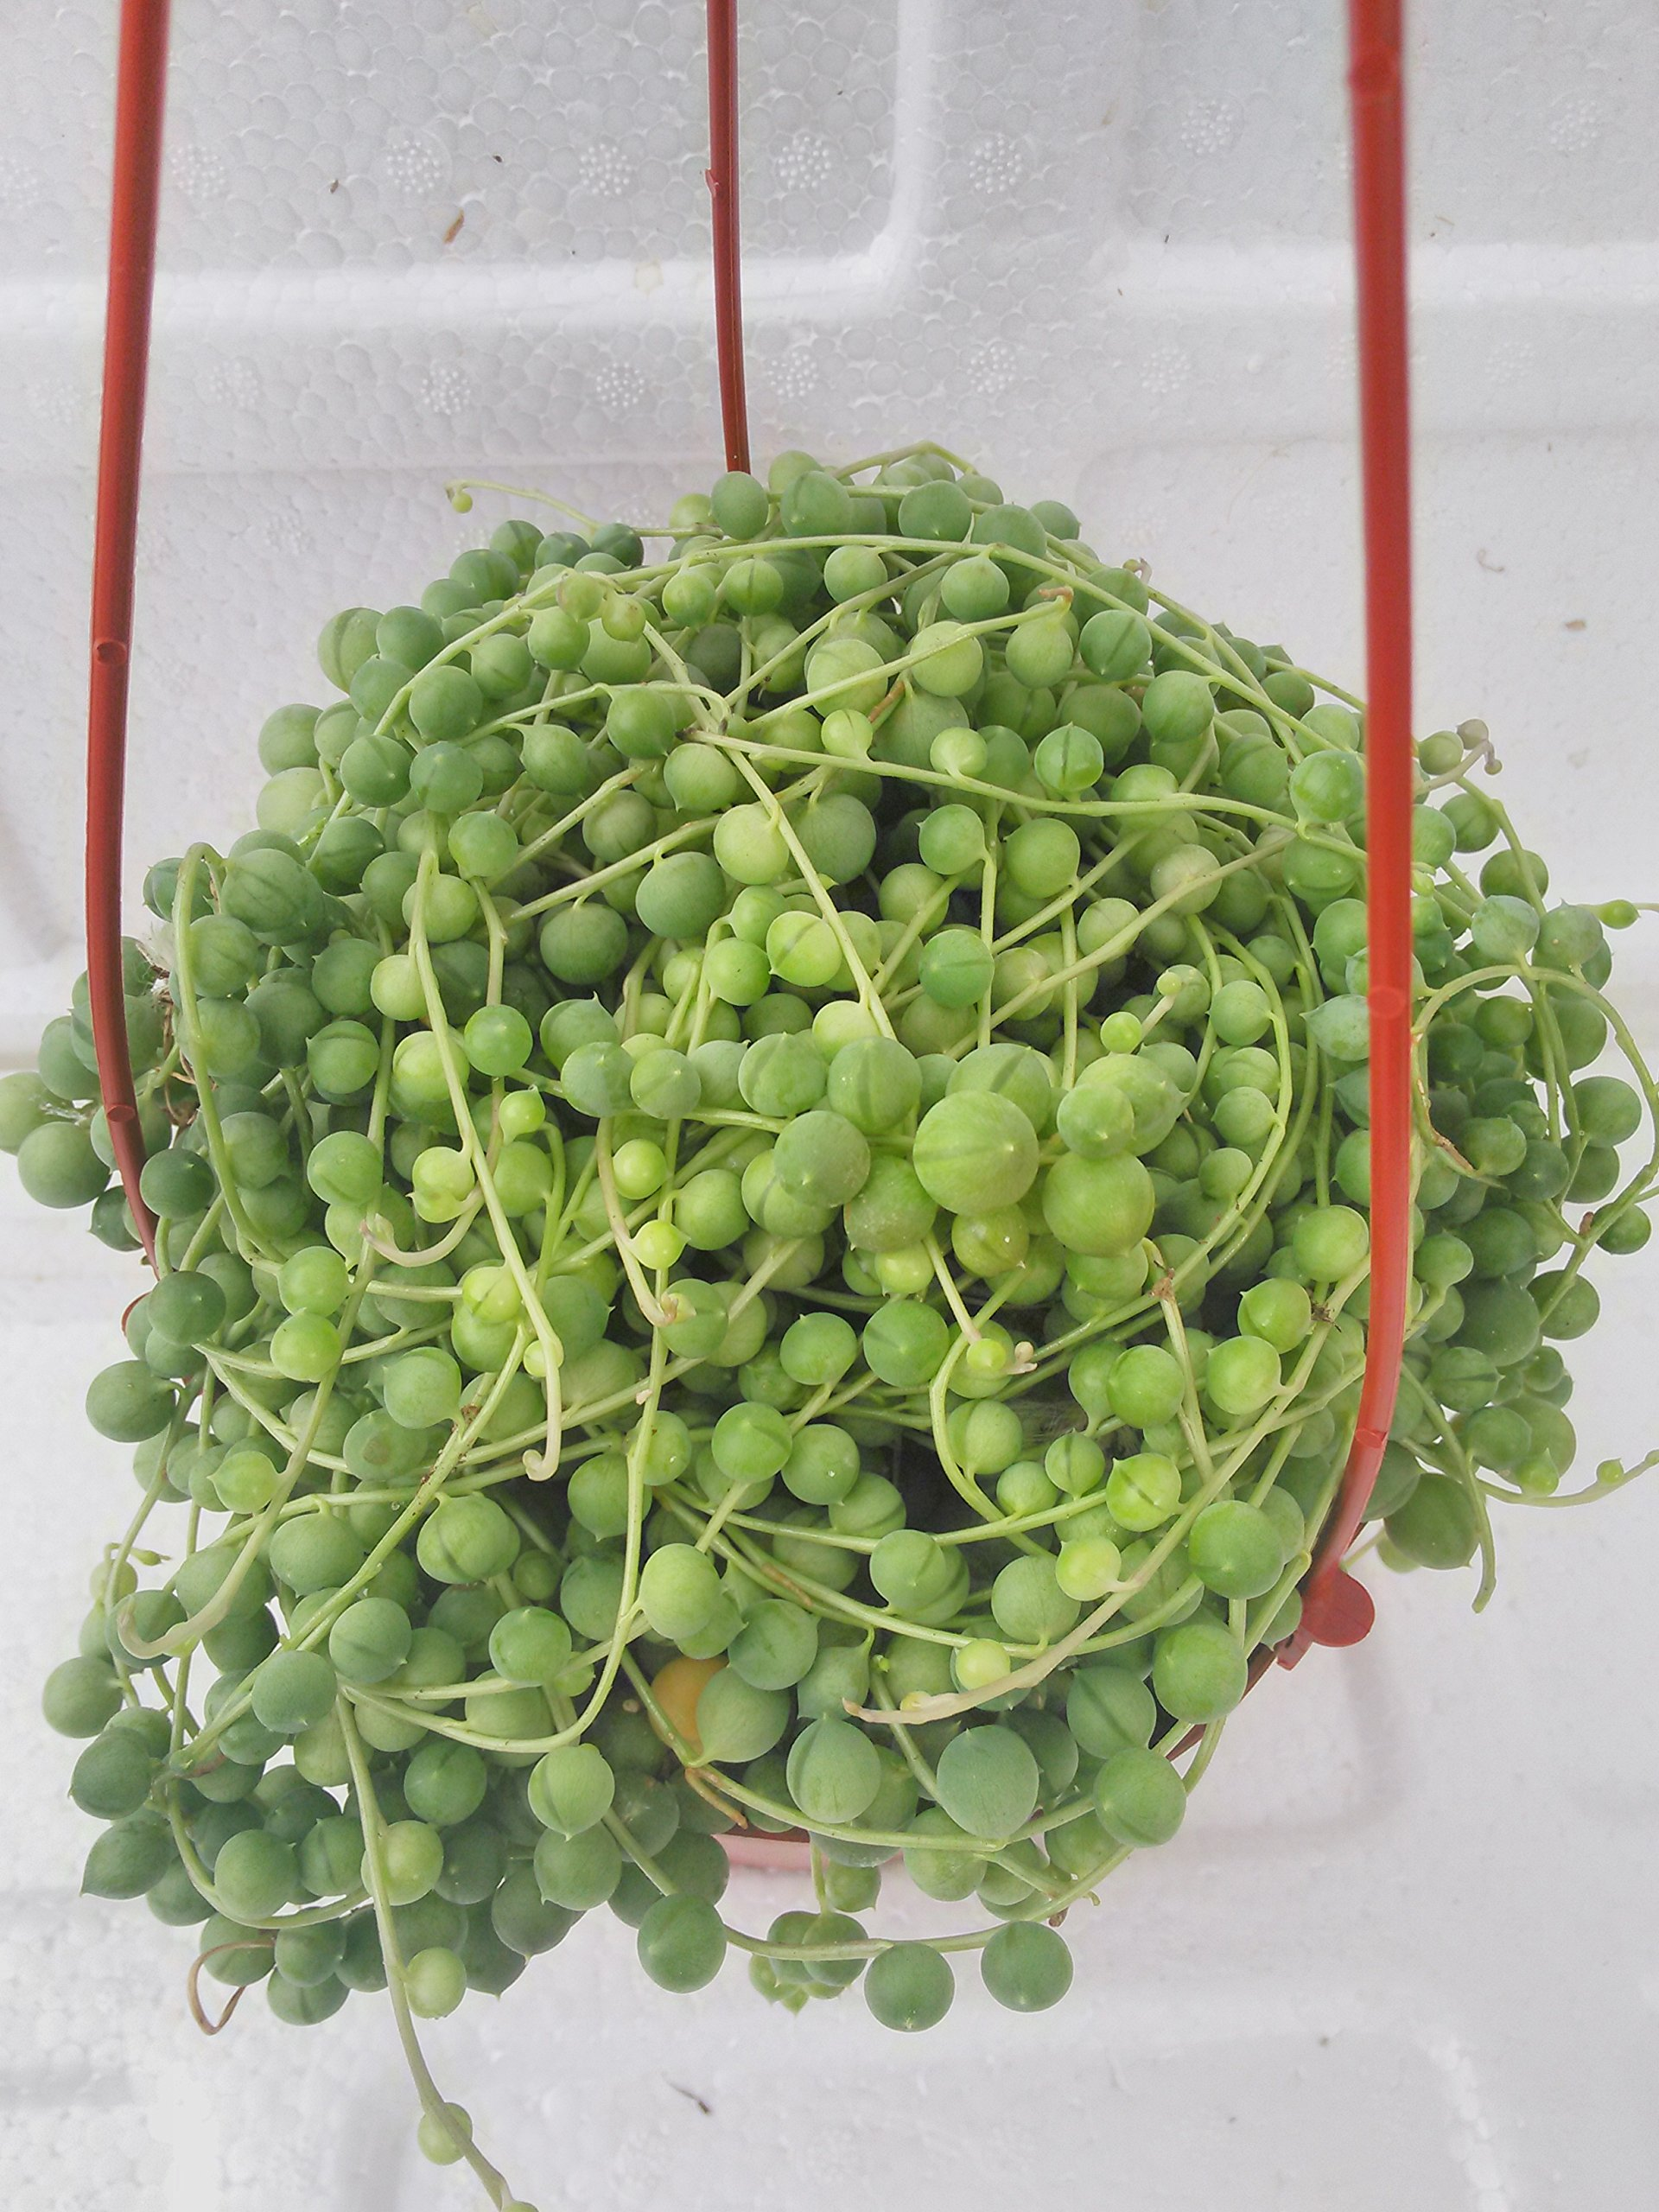 Jmbamboo - Large String of Pearls Succulent- 6'' Hanging Basket - Senecio - Easy to Grow by JM BAMBOO (Image #2)